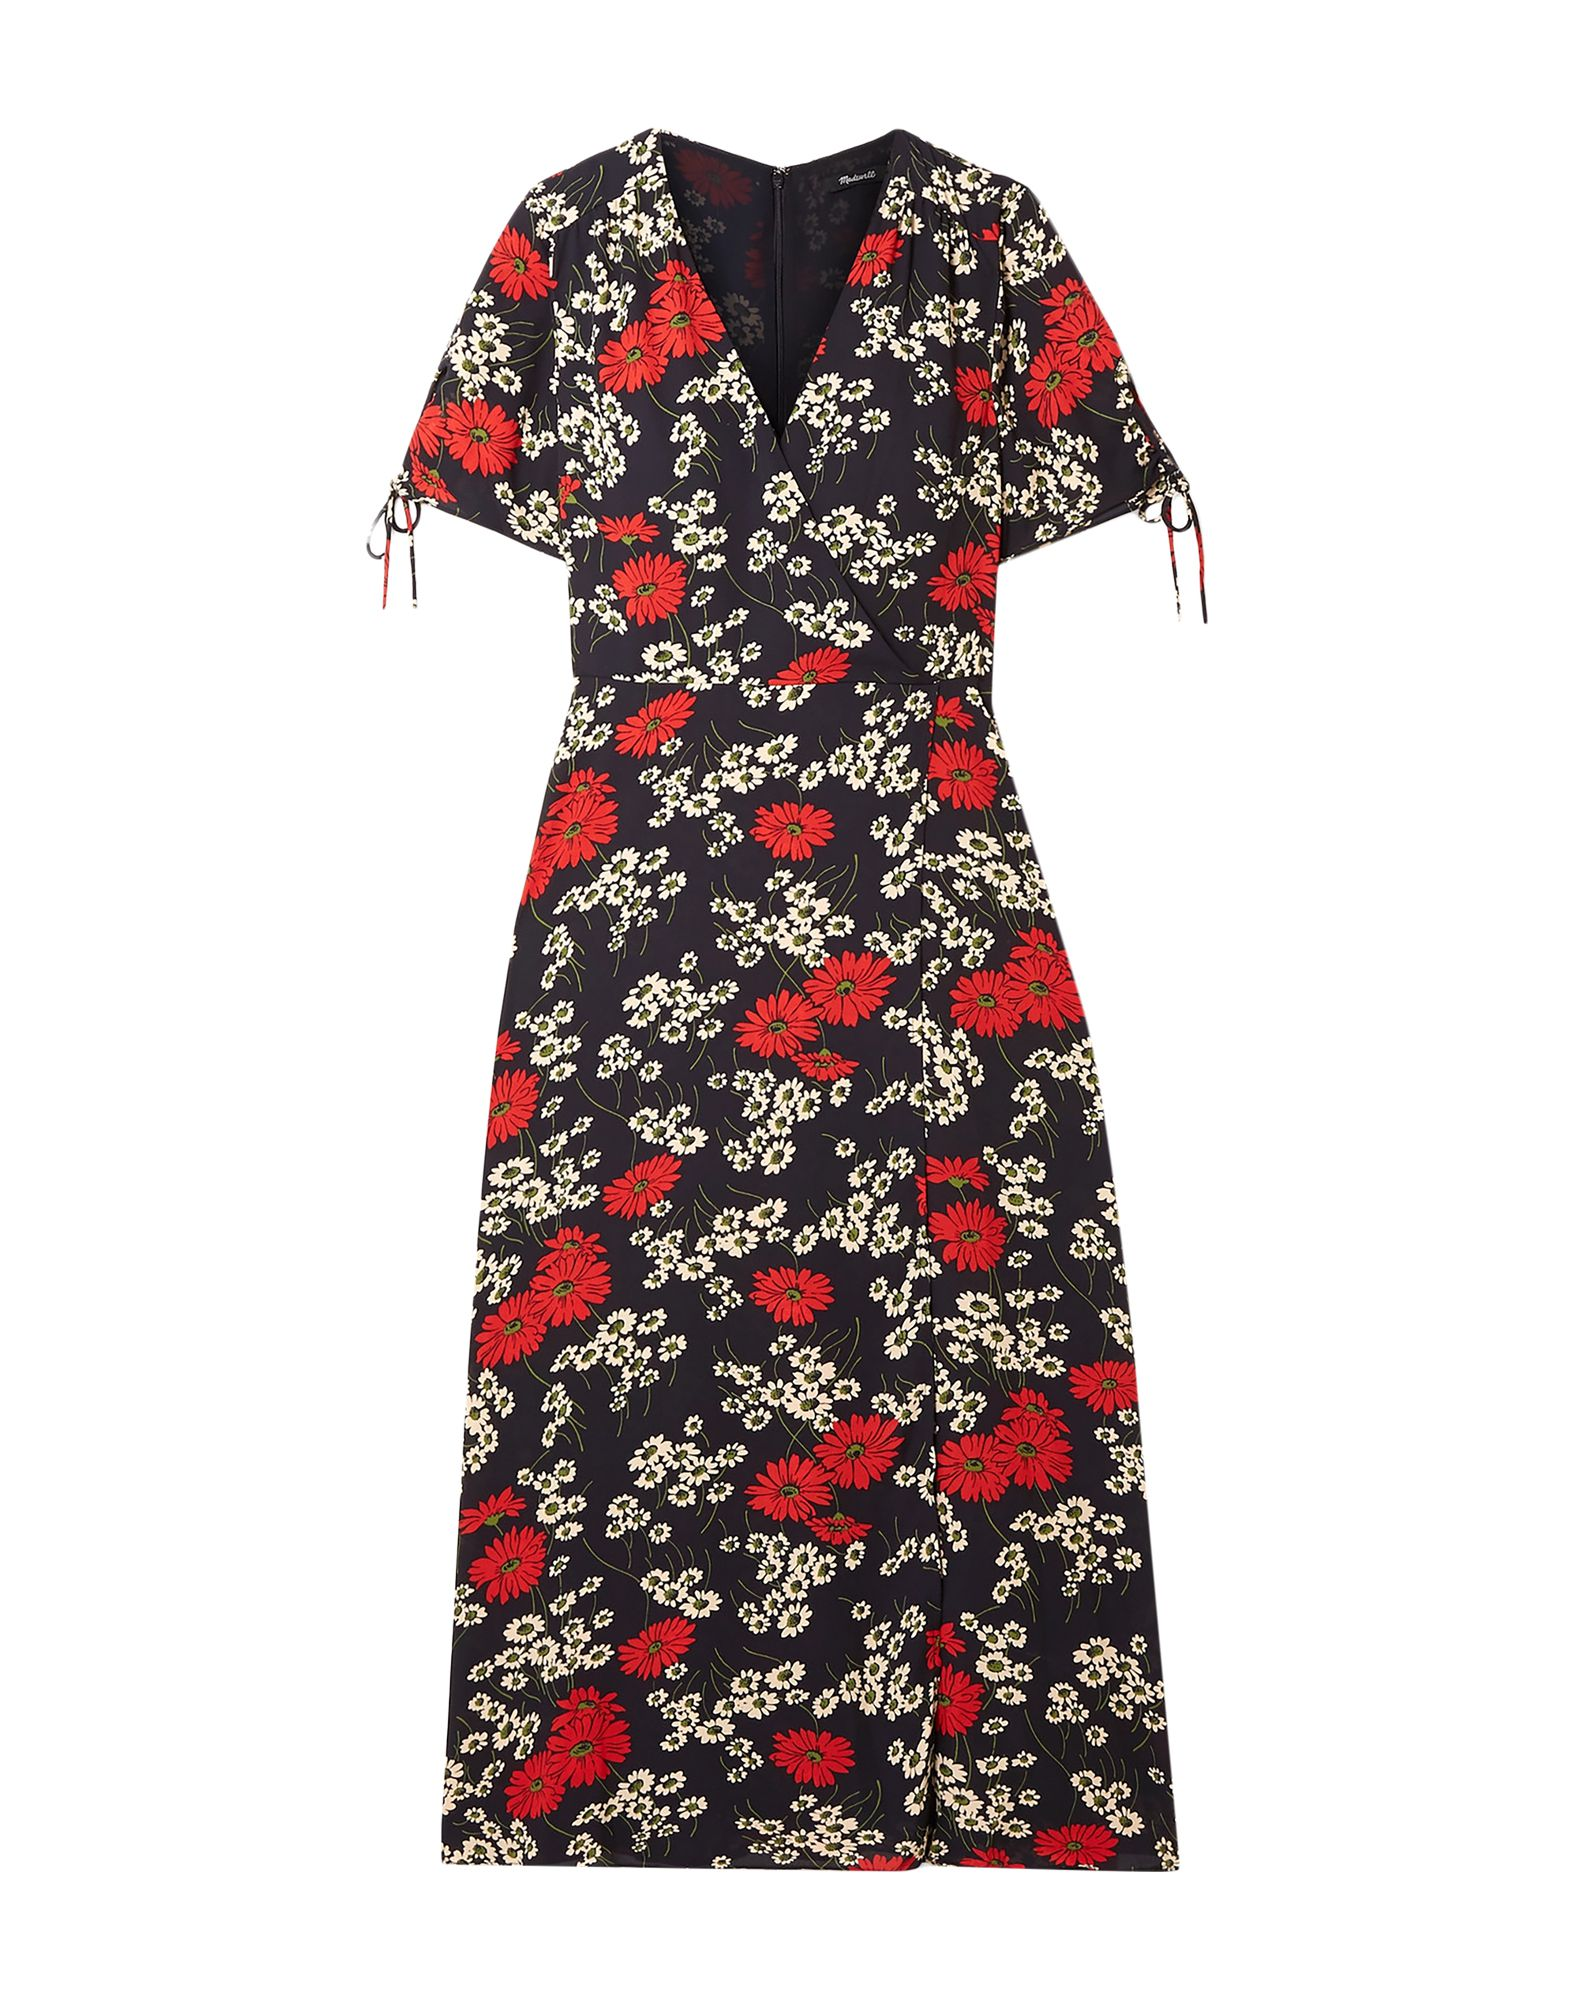 MADEWELL 3/4 length dresses. crepe, laces, floral design, v-neck, short sleeves, no pockets, rear closure, zipper closure, semi-lined. 100% Polyester